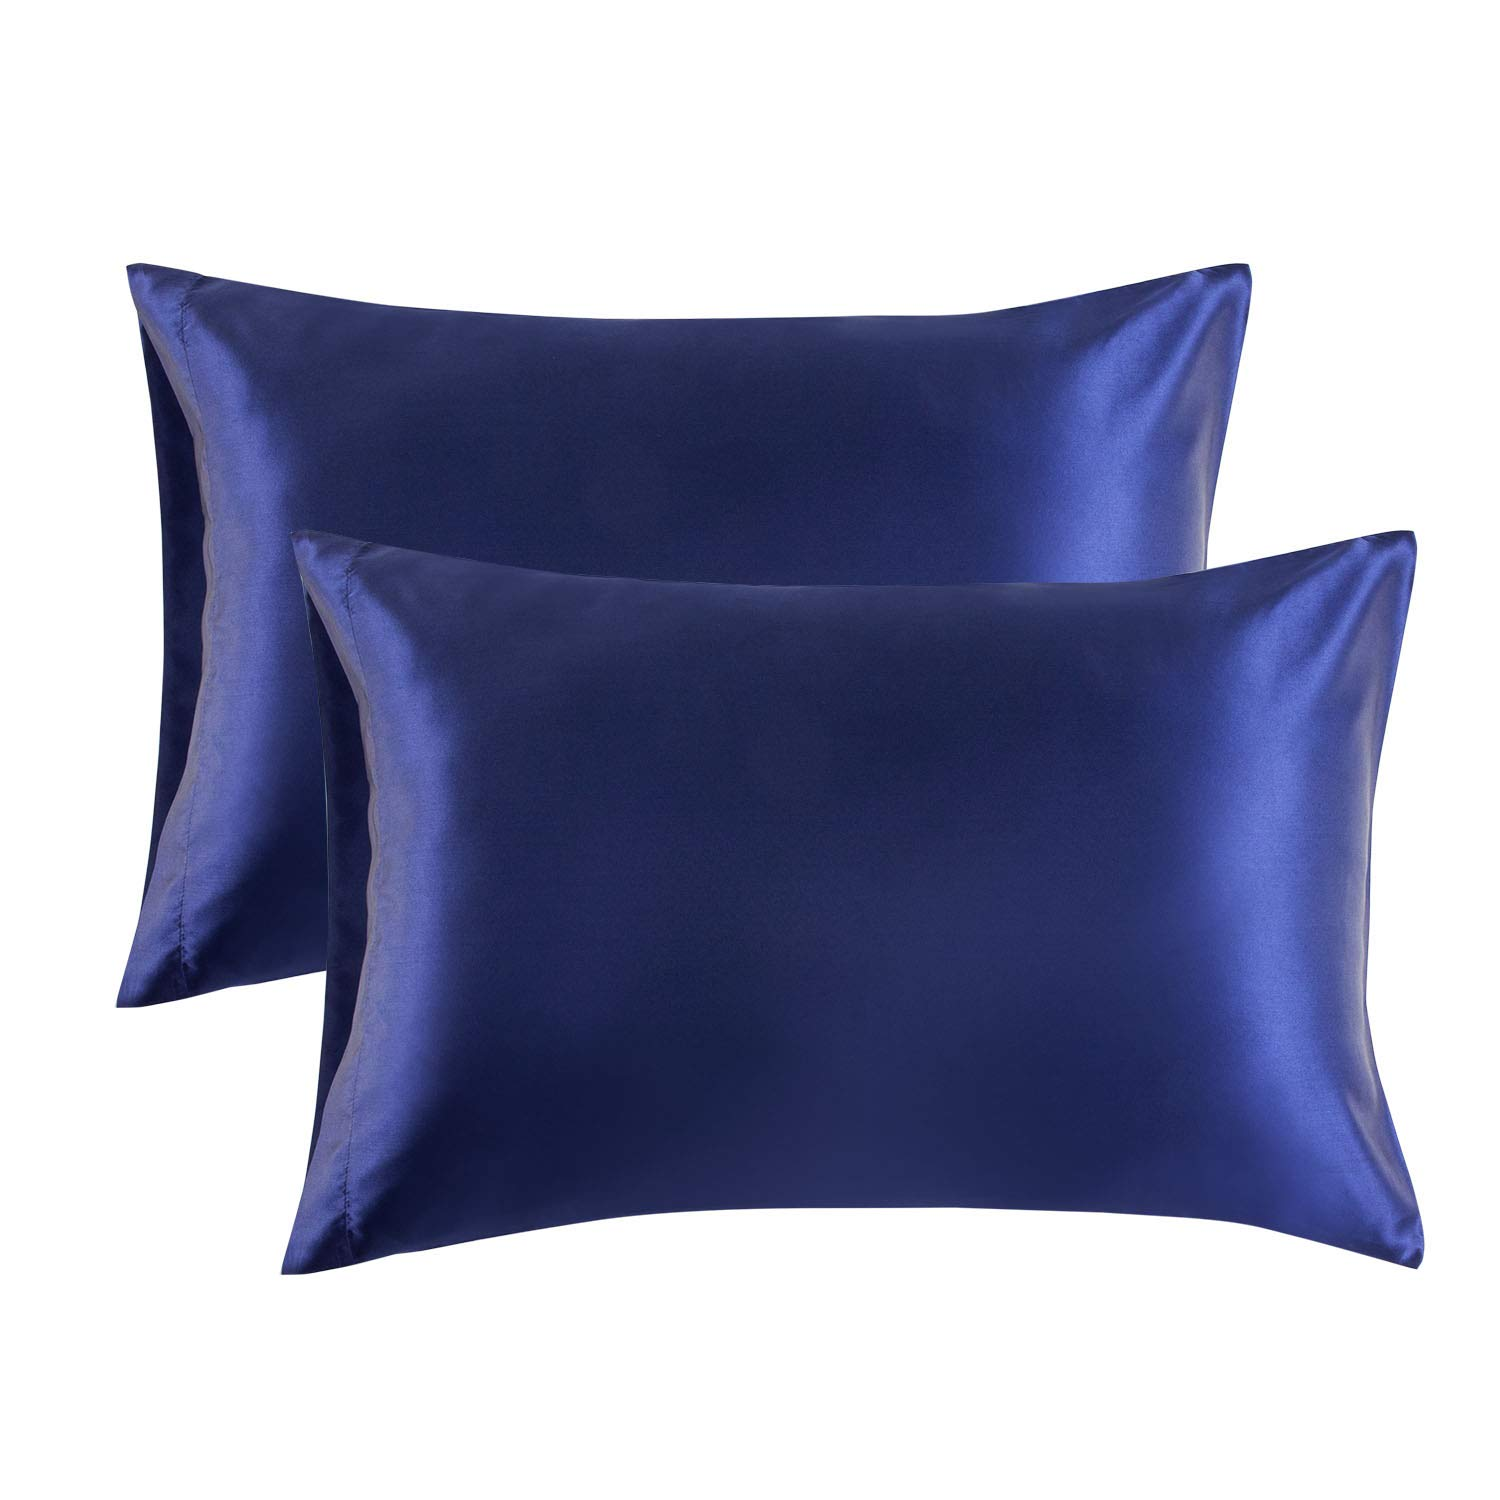 20x30 Inches 2 Pack Satin Pillowcase Stain Resistant A